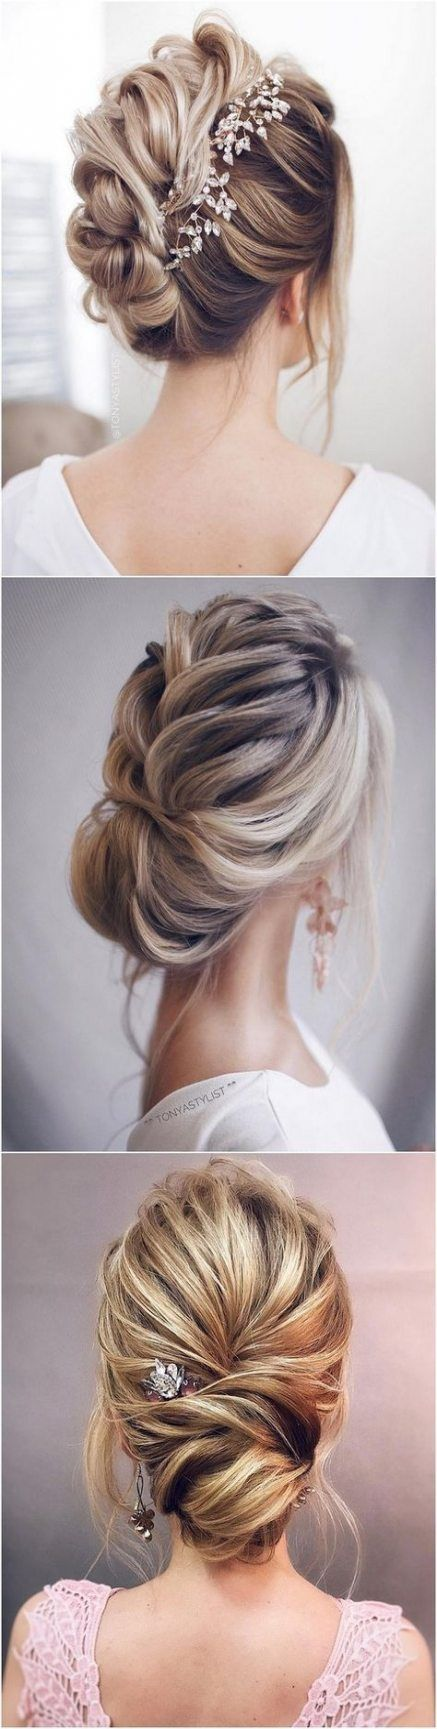 31 Ideas Wedding Hairstyles Short Shoulder Length Highlights,  #Hairstyles #hairstyleswedding...